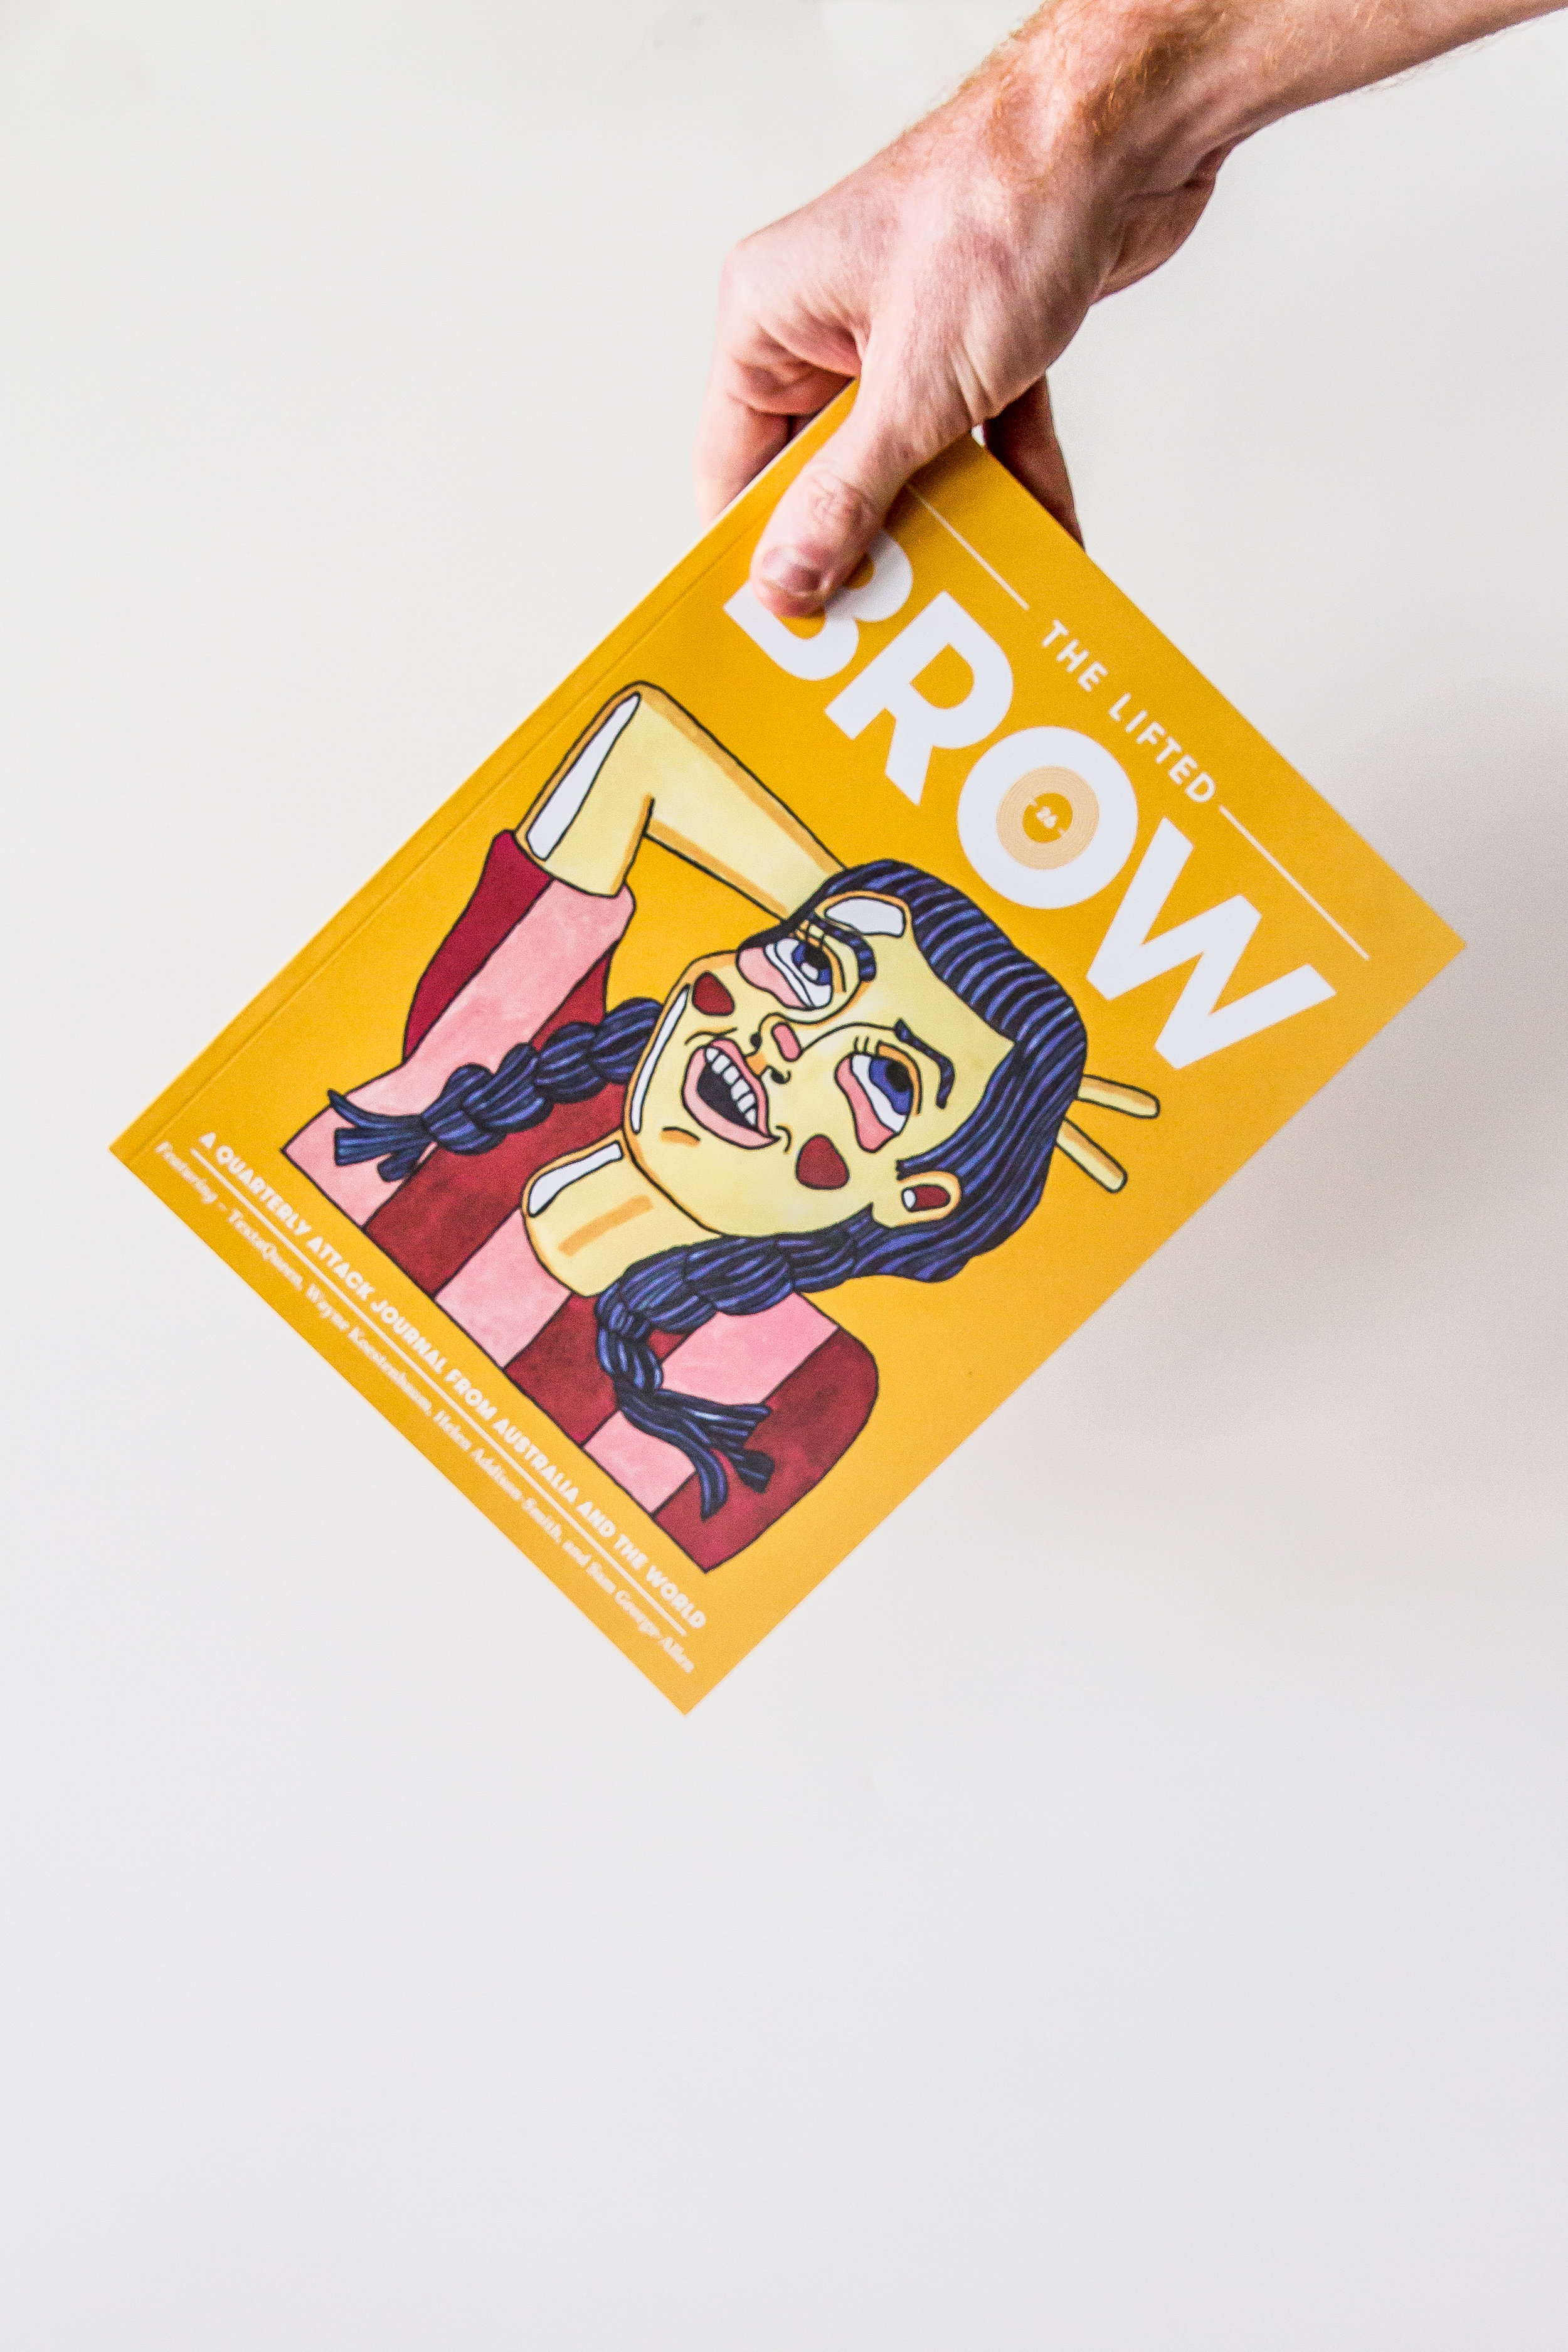 The Lifted Brow  is a quarterly print attack magazine from Australia and the world, publishing literature, visual art, and things in-between. They will be selling copies of TLB, copies of their first book: THE ISLAND WILL SINK by Briohny Doyle, tote bags, t-shirts, and more! Also, they will sell some zines and comics and more from Melbourne zinesters and comics artists and others who can't make the trip.